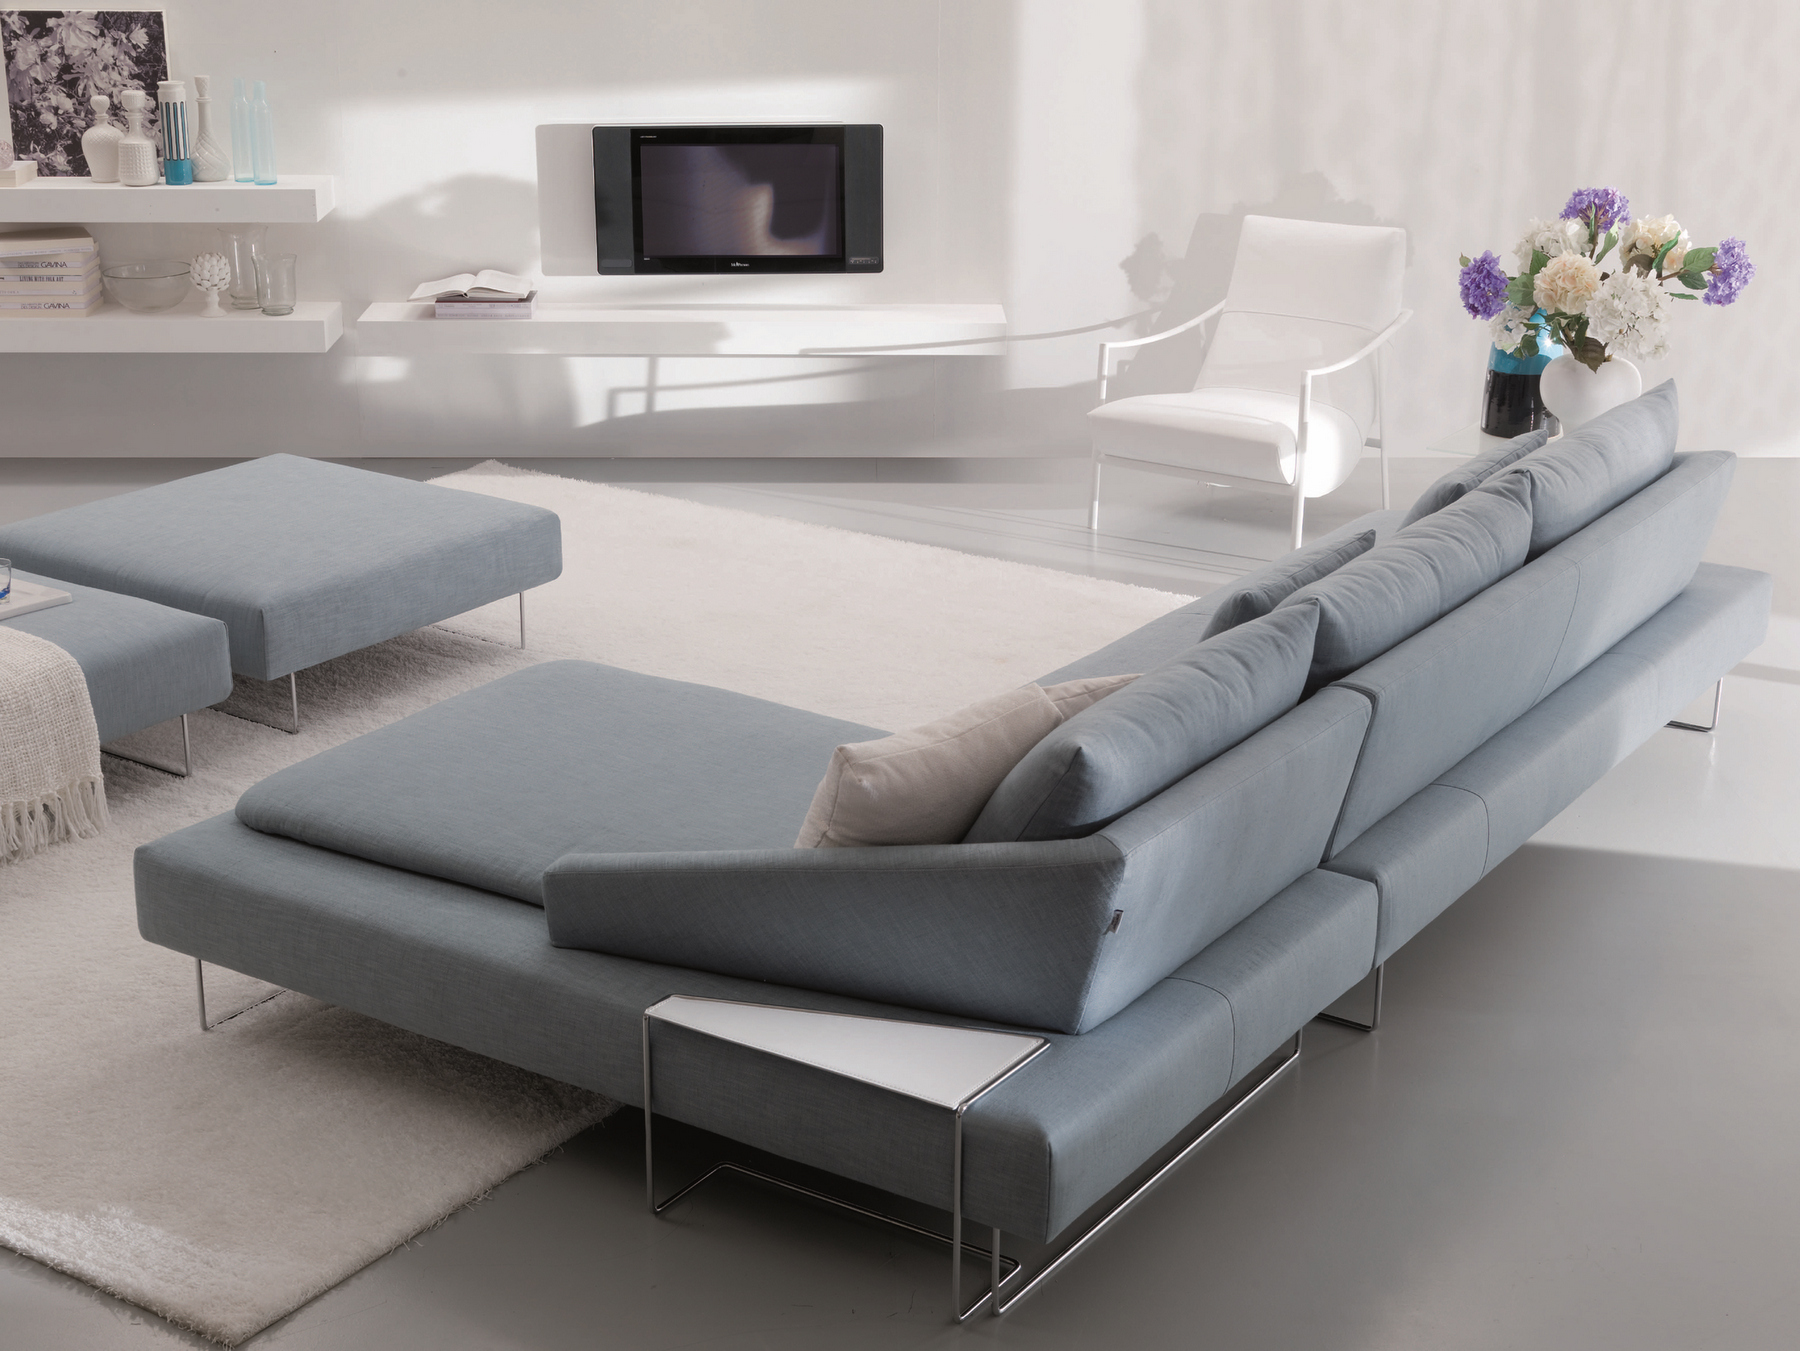 itaca corner sofa by bontempi casa design angelo natuzzi angelo dall 39 aglio. Black Bedroom Furniture Sets. Home Design Ideas